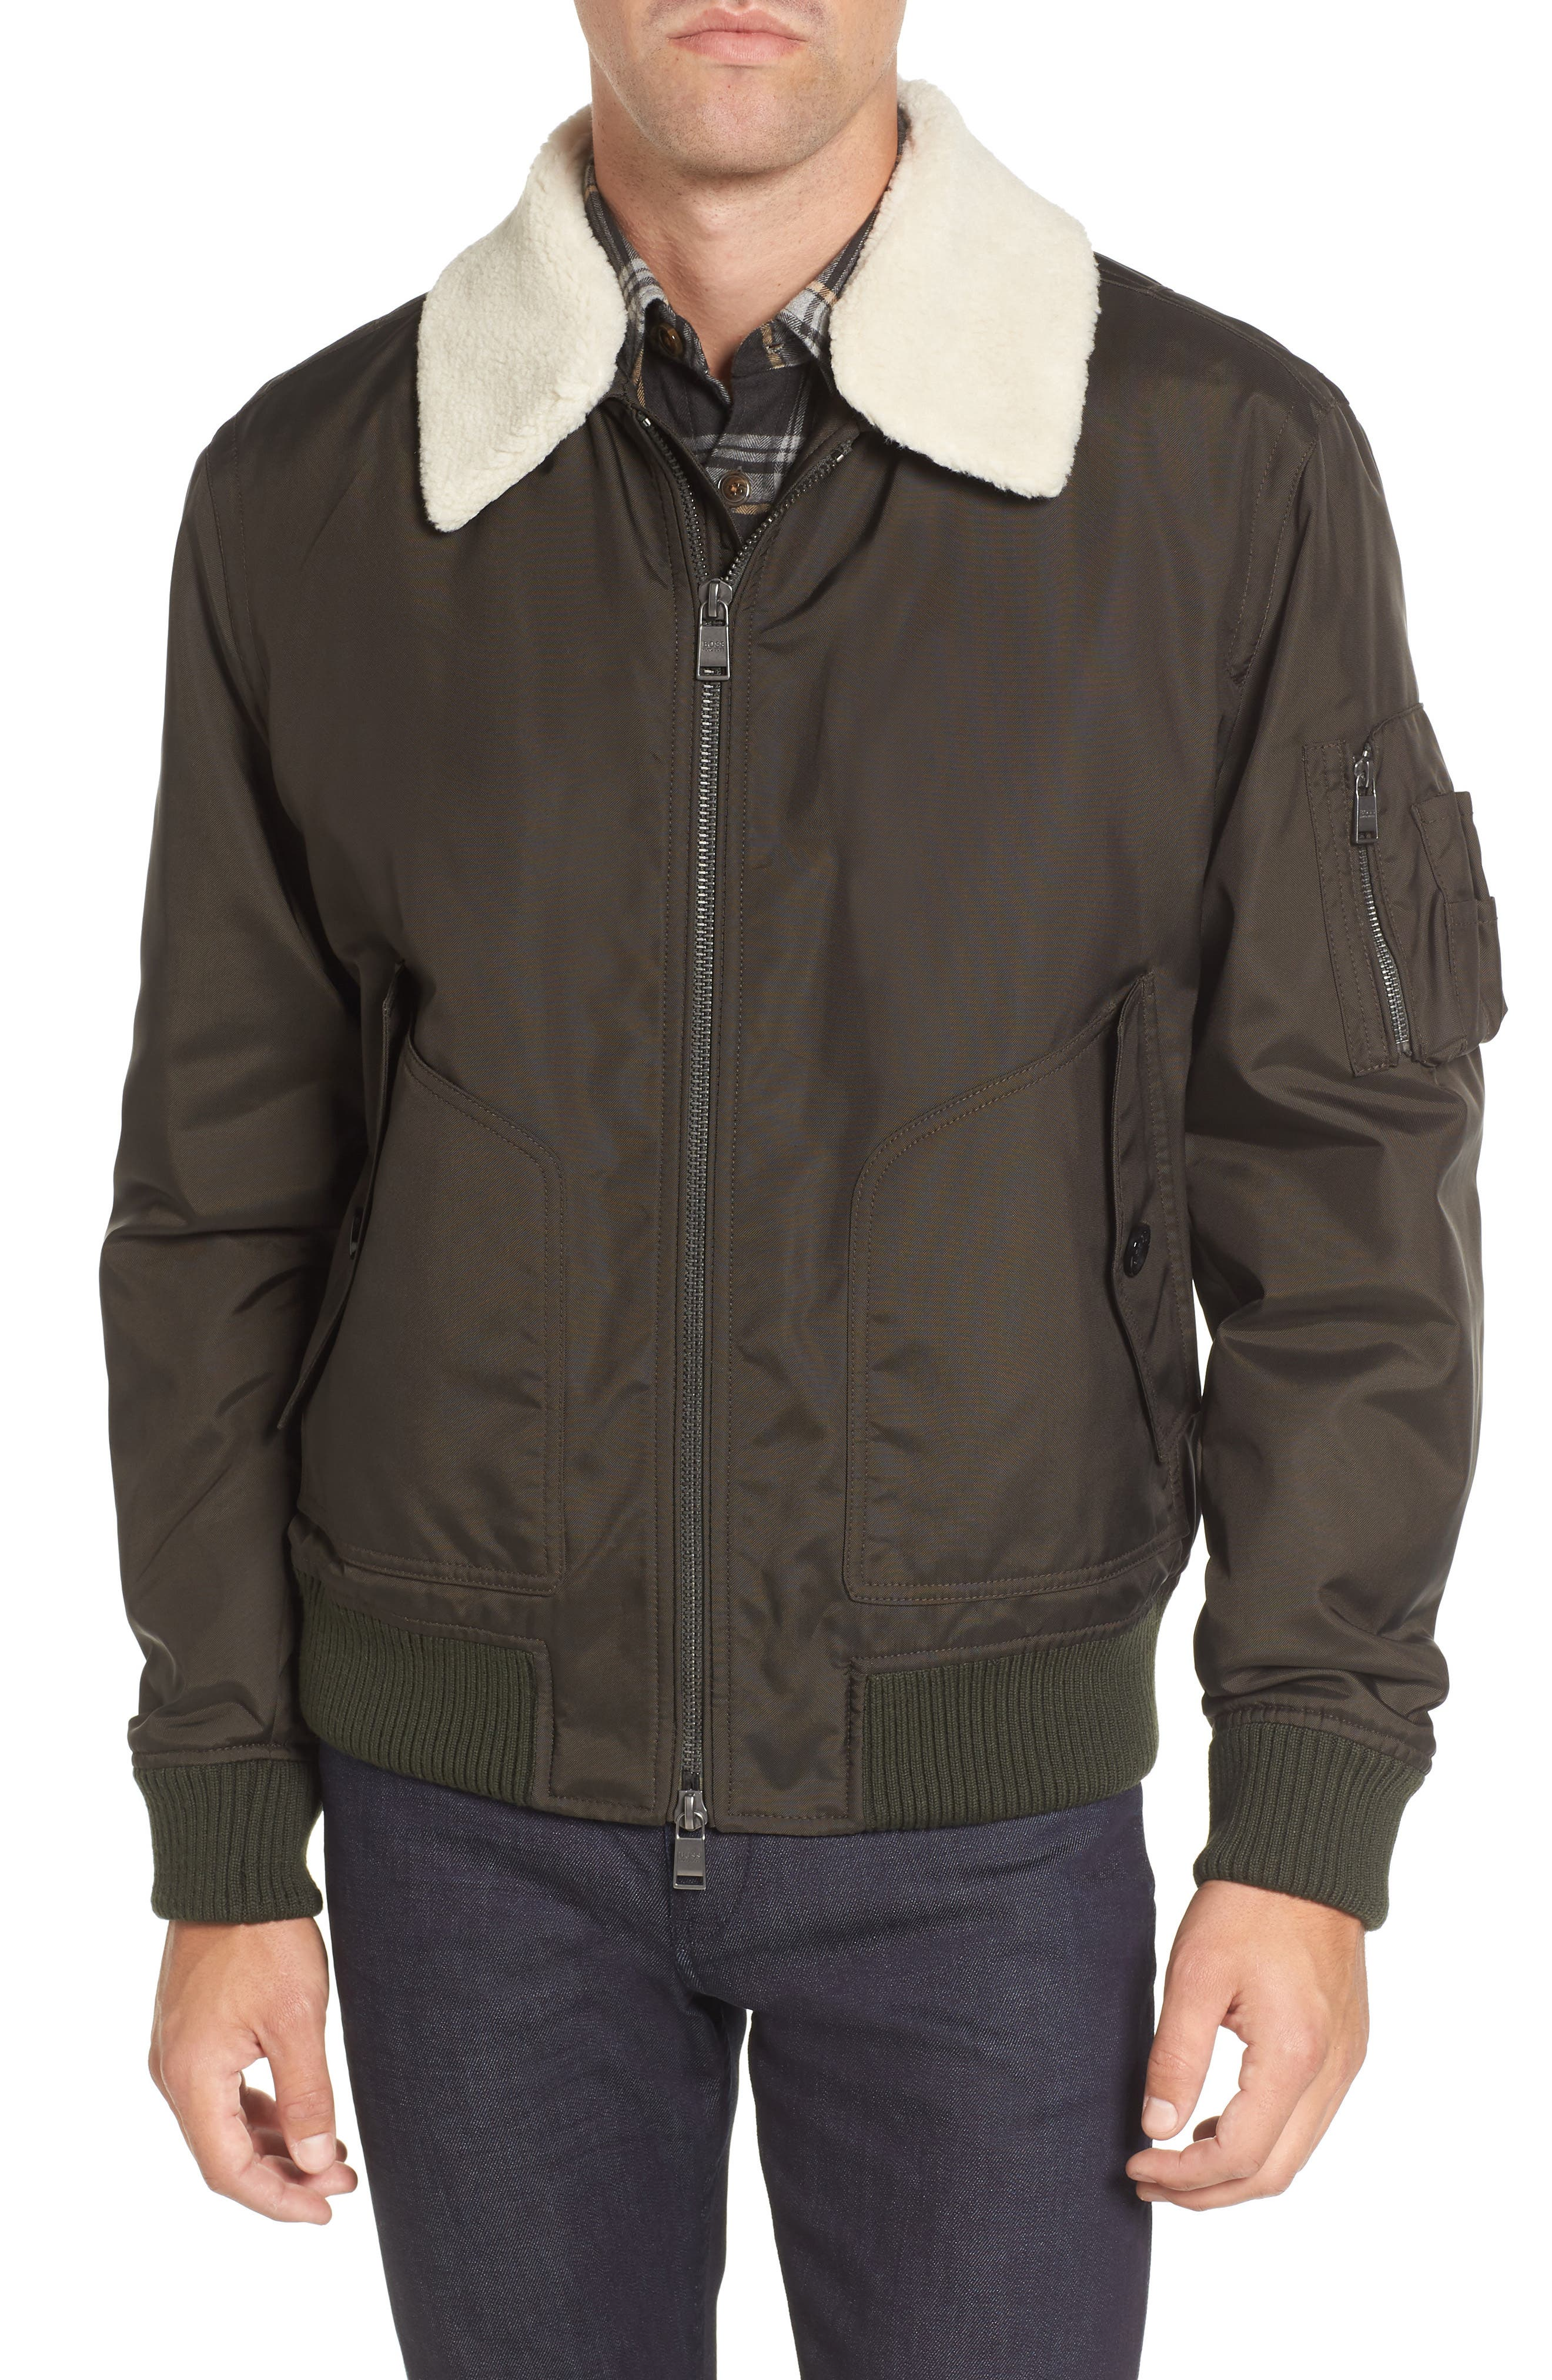 Cobra Aviator Jacket with Faux Fur Collar,                         Main,                         color,